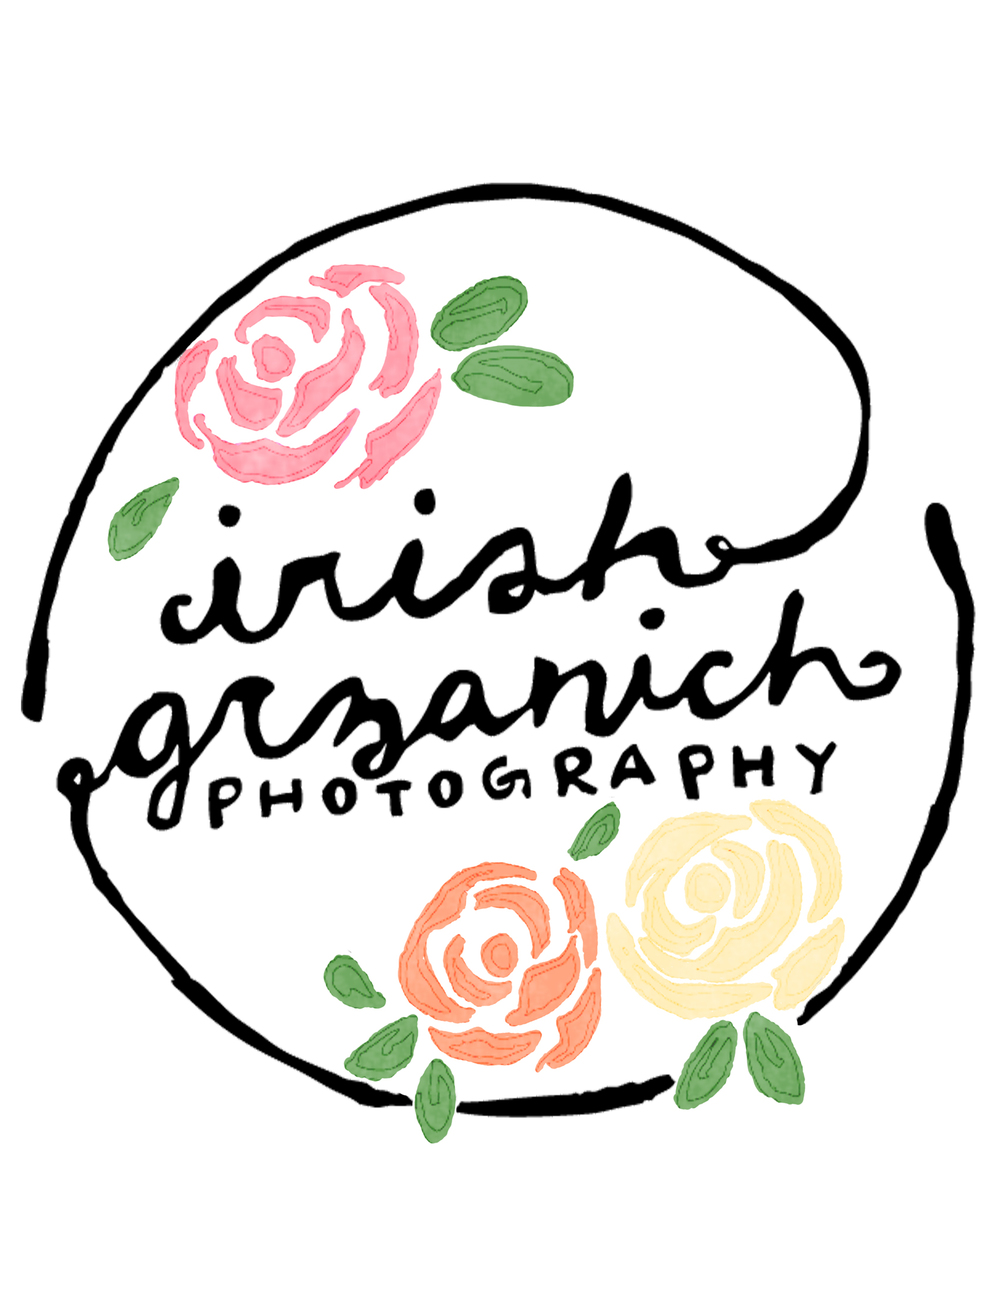 Destination Wedding Photography Irish Grzanich Photography